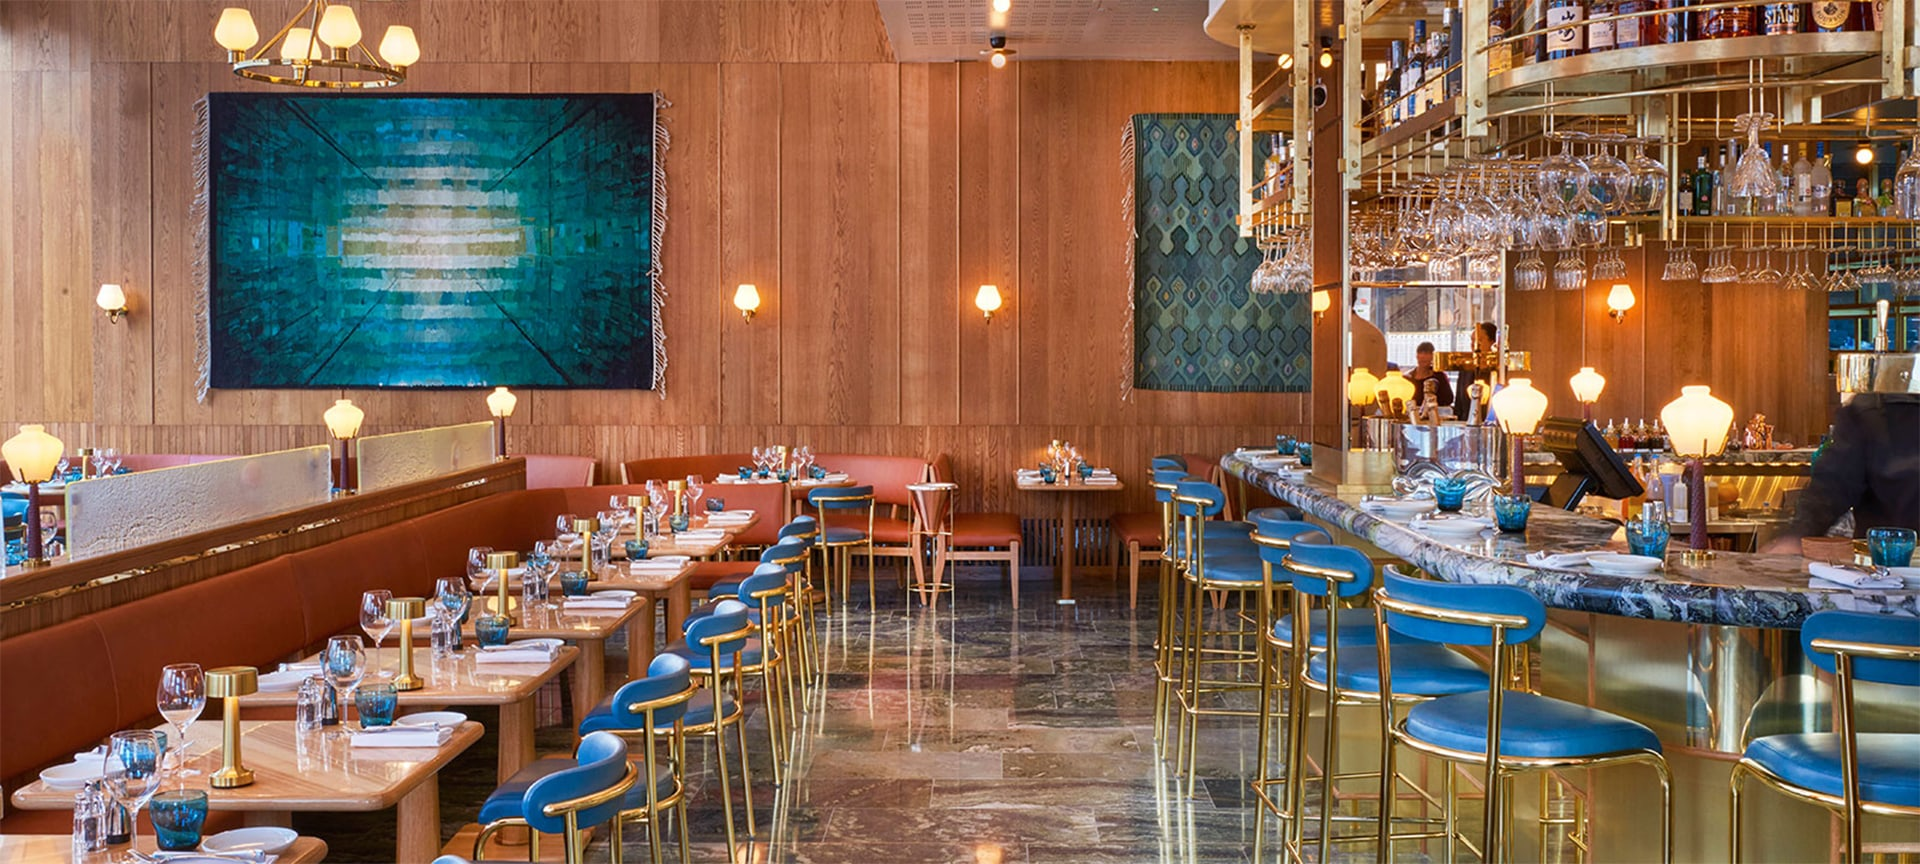 Aquavit - New York's two-Michelin-starred Scandinavian haven has opened its first outpost in London. Restaurant design king Martin Brudnizki was charged with revamping the space, which features a wall-mounted textile by Olafur Eliasson, silverware by Georg Jensen and furnishings by Svenskt Tenn. Naturally, the menu also remains faithful to the region's delights.